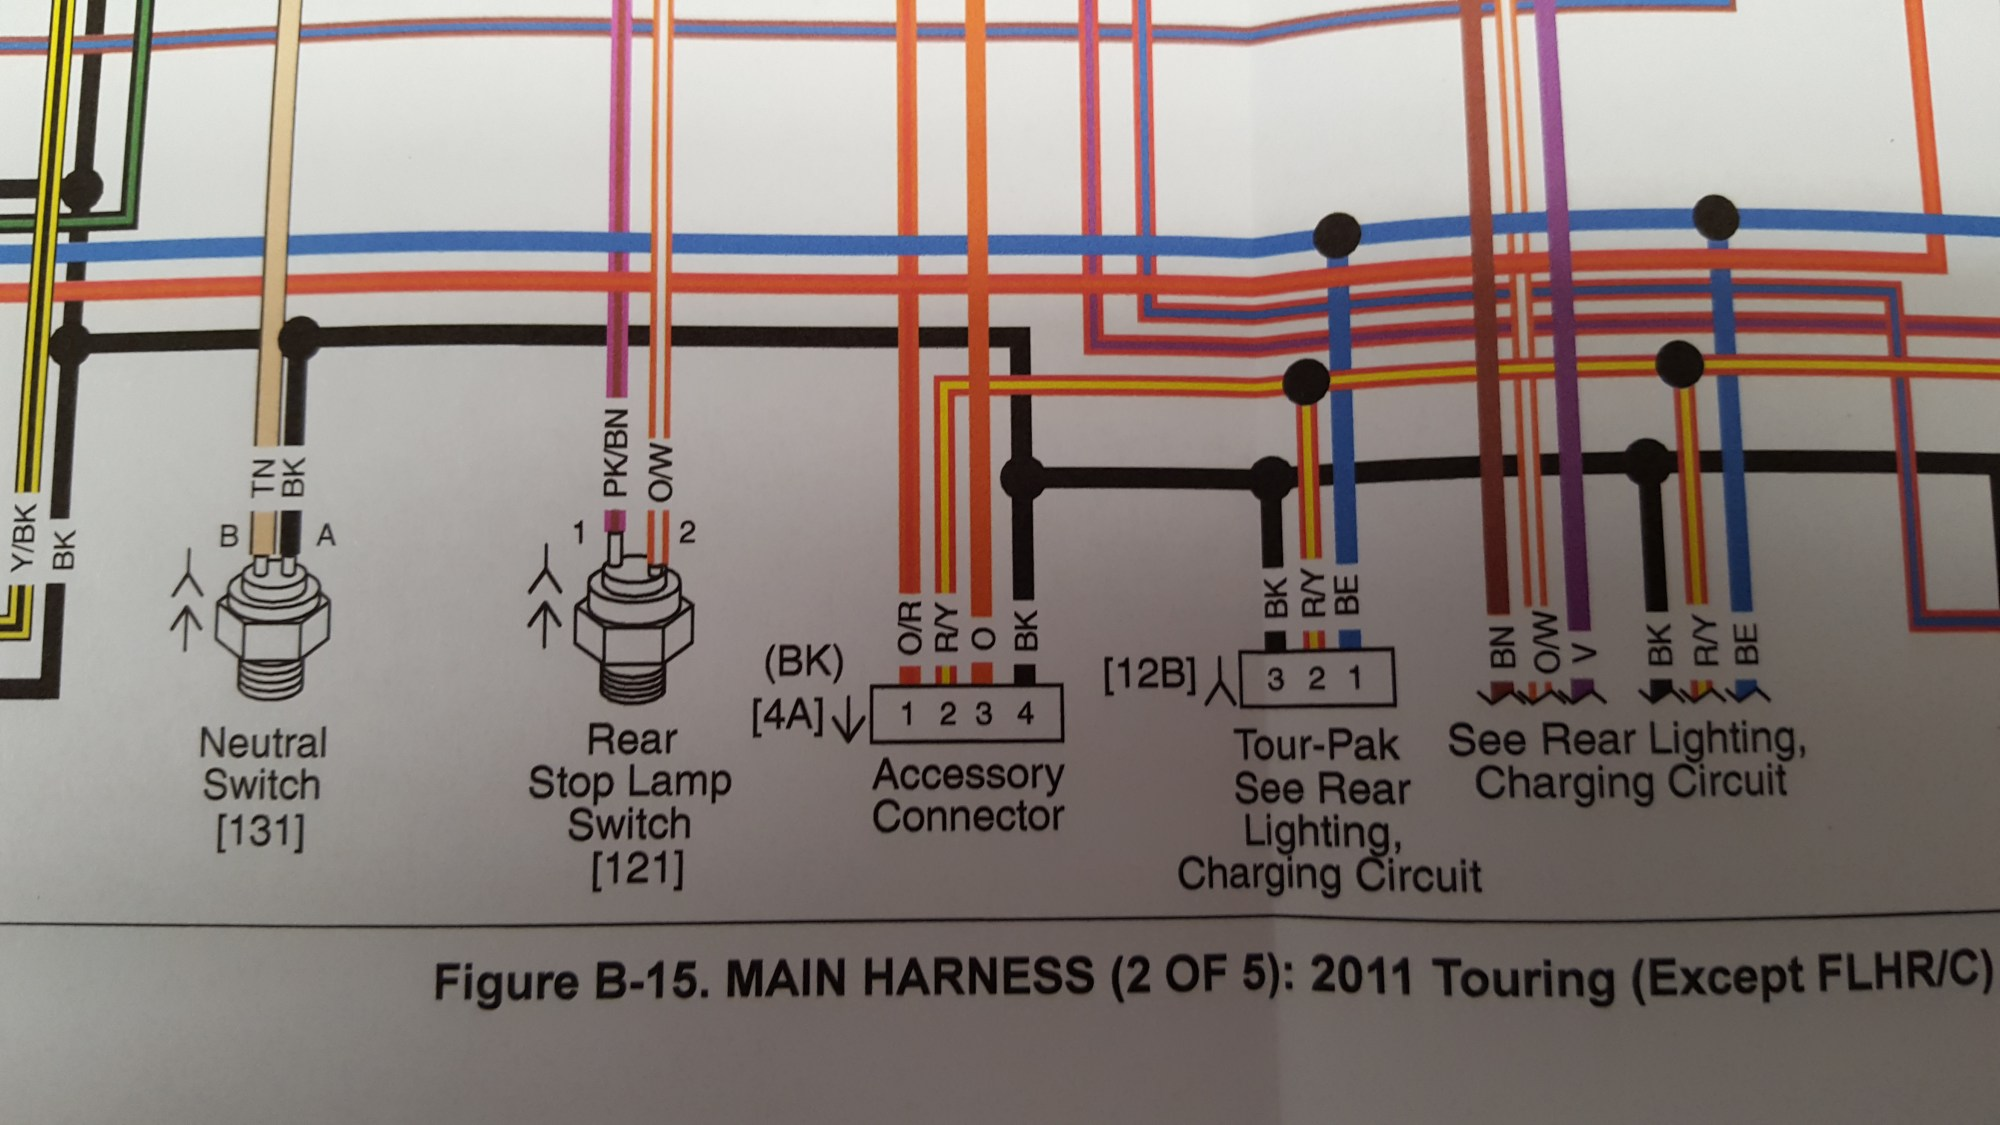 hight resolution of help reading wiring schematic on accessory connector harness close up jpg installing monkey bars throttle wire problem harley davidson